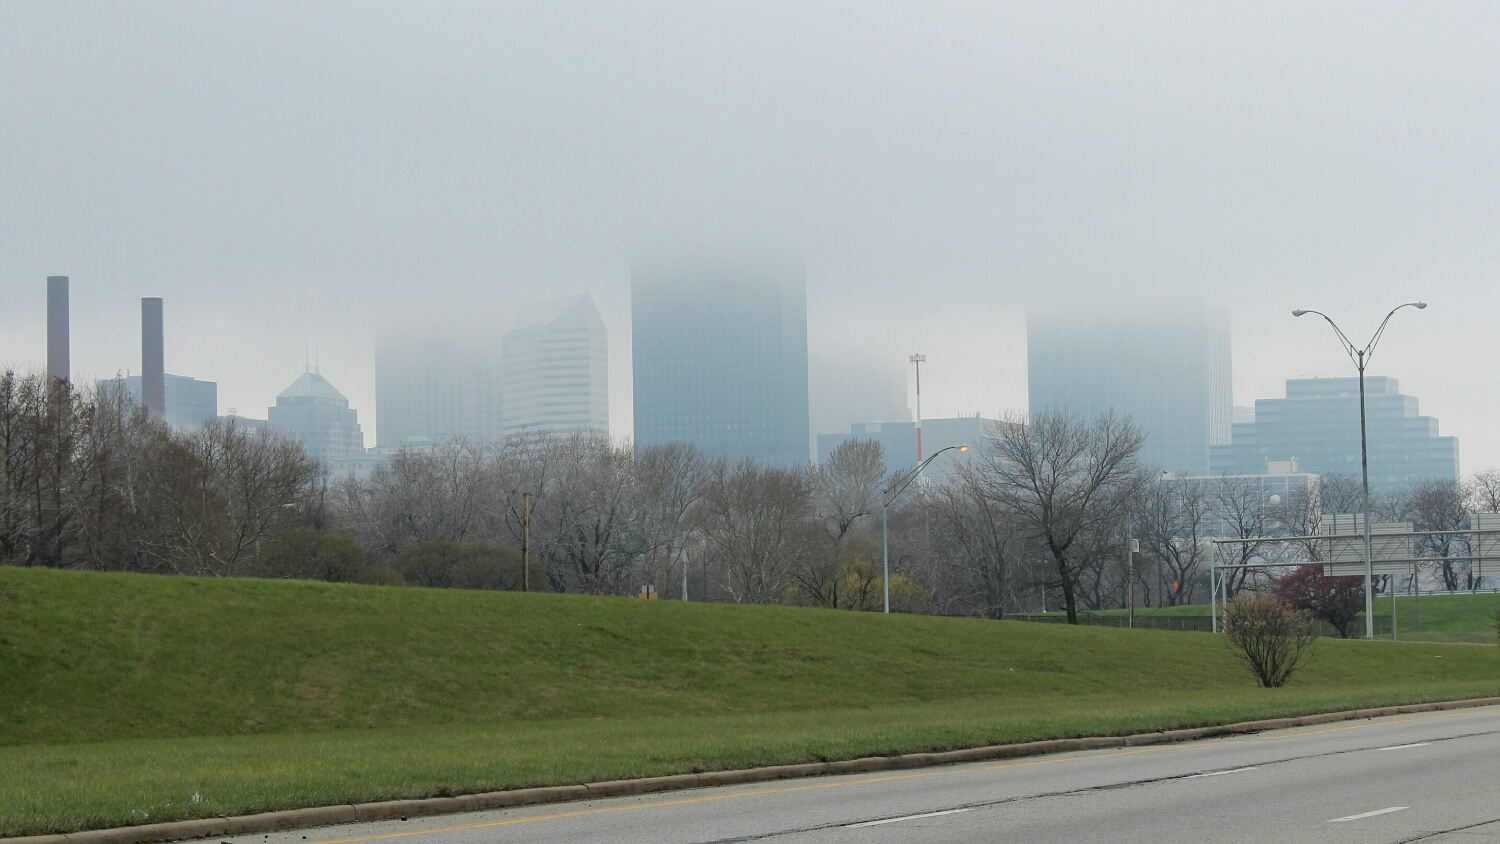 Cleveland on a cloudy day